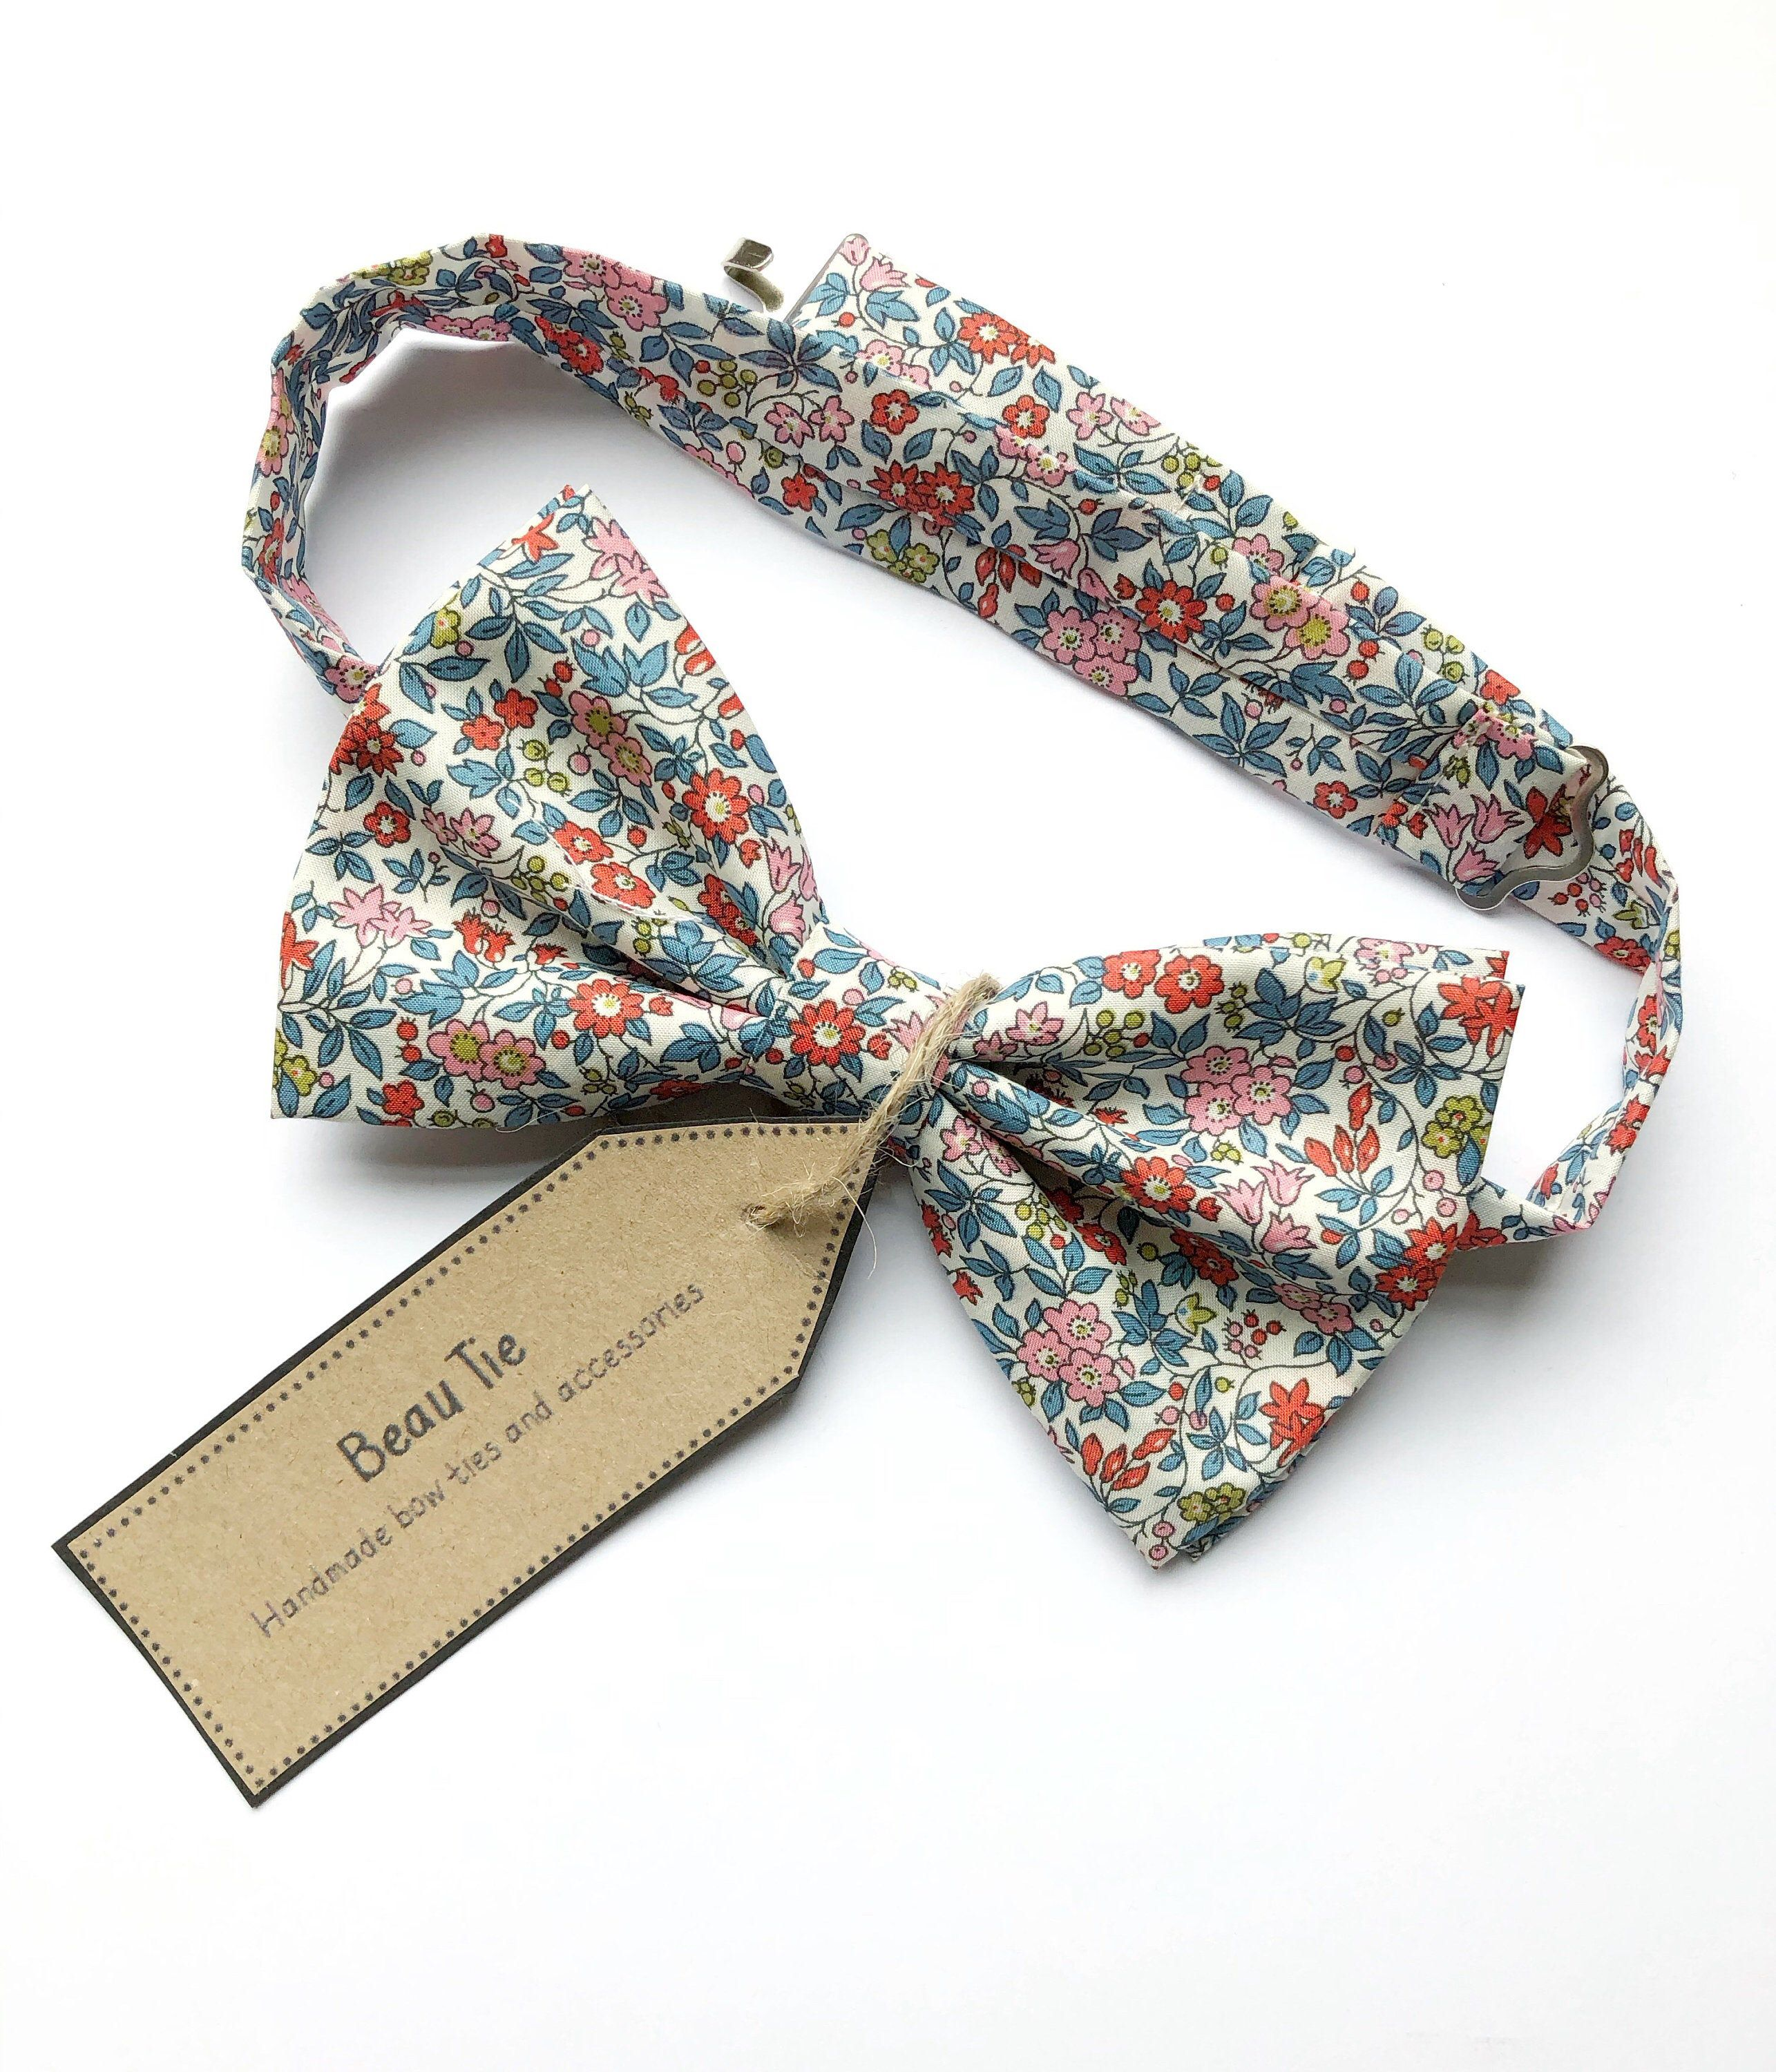 Men S Floral Bow Tie Handmade Using Liberty Cotton Made In The Uk And Great As A Gift For Him Or A Wedding Bow Tie F Floral Bow Tie Gifts For Him